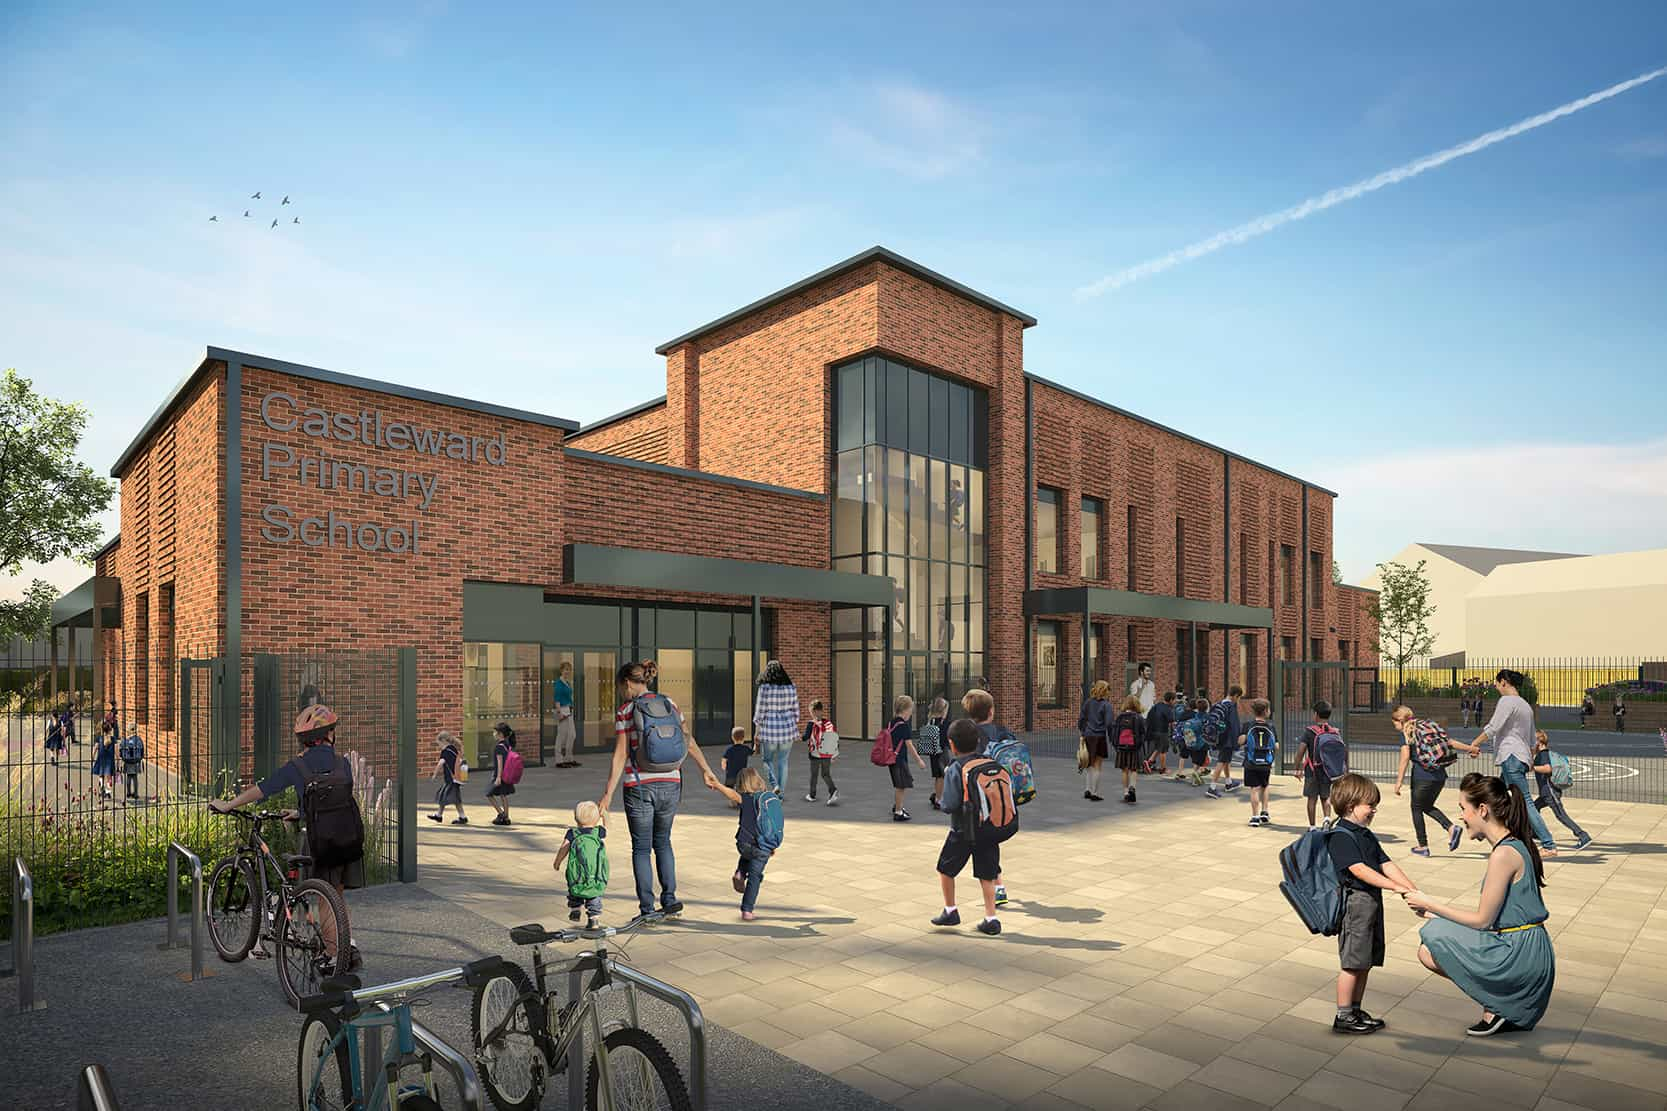 Castleward Primary School CGI